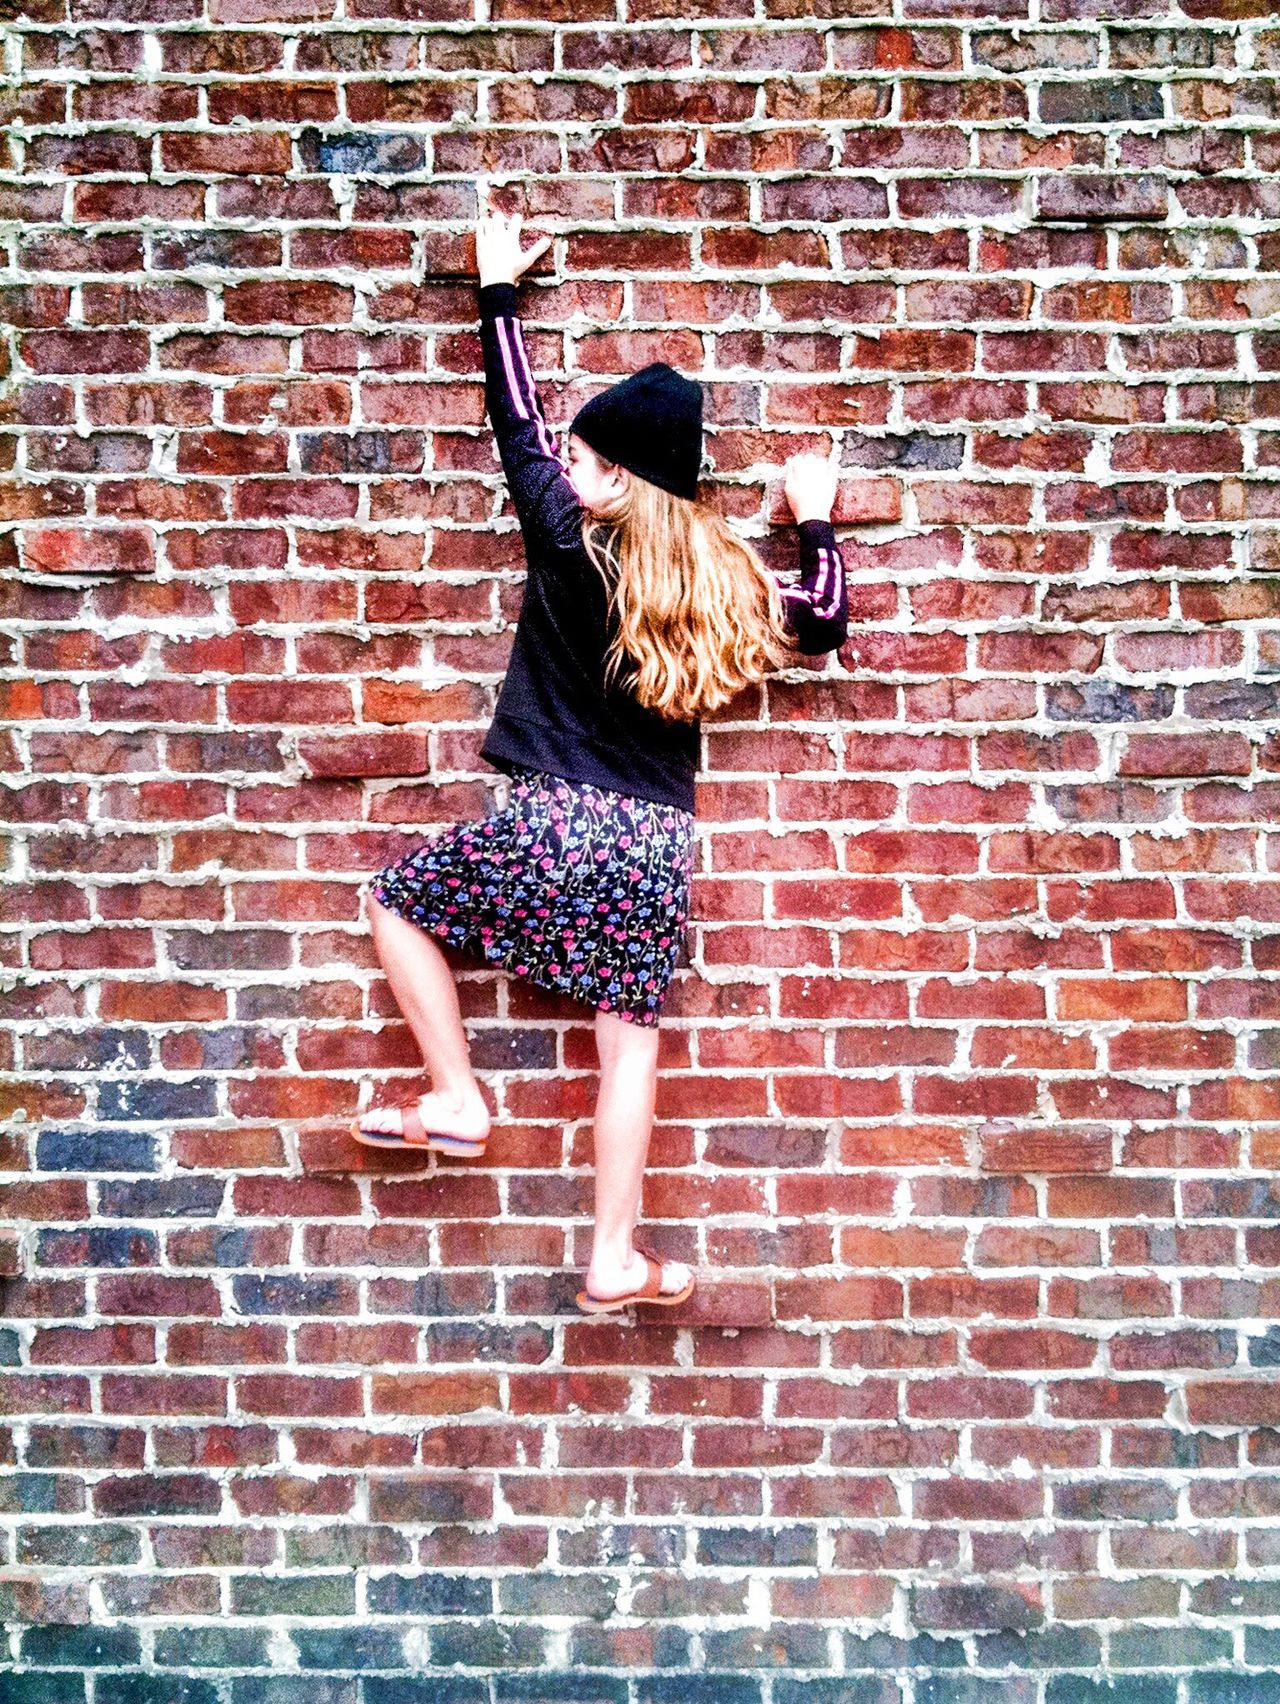 Beautiful stock photos of girl, Brick, Brick Wall, Caucasian Ethnicity, Childhood